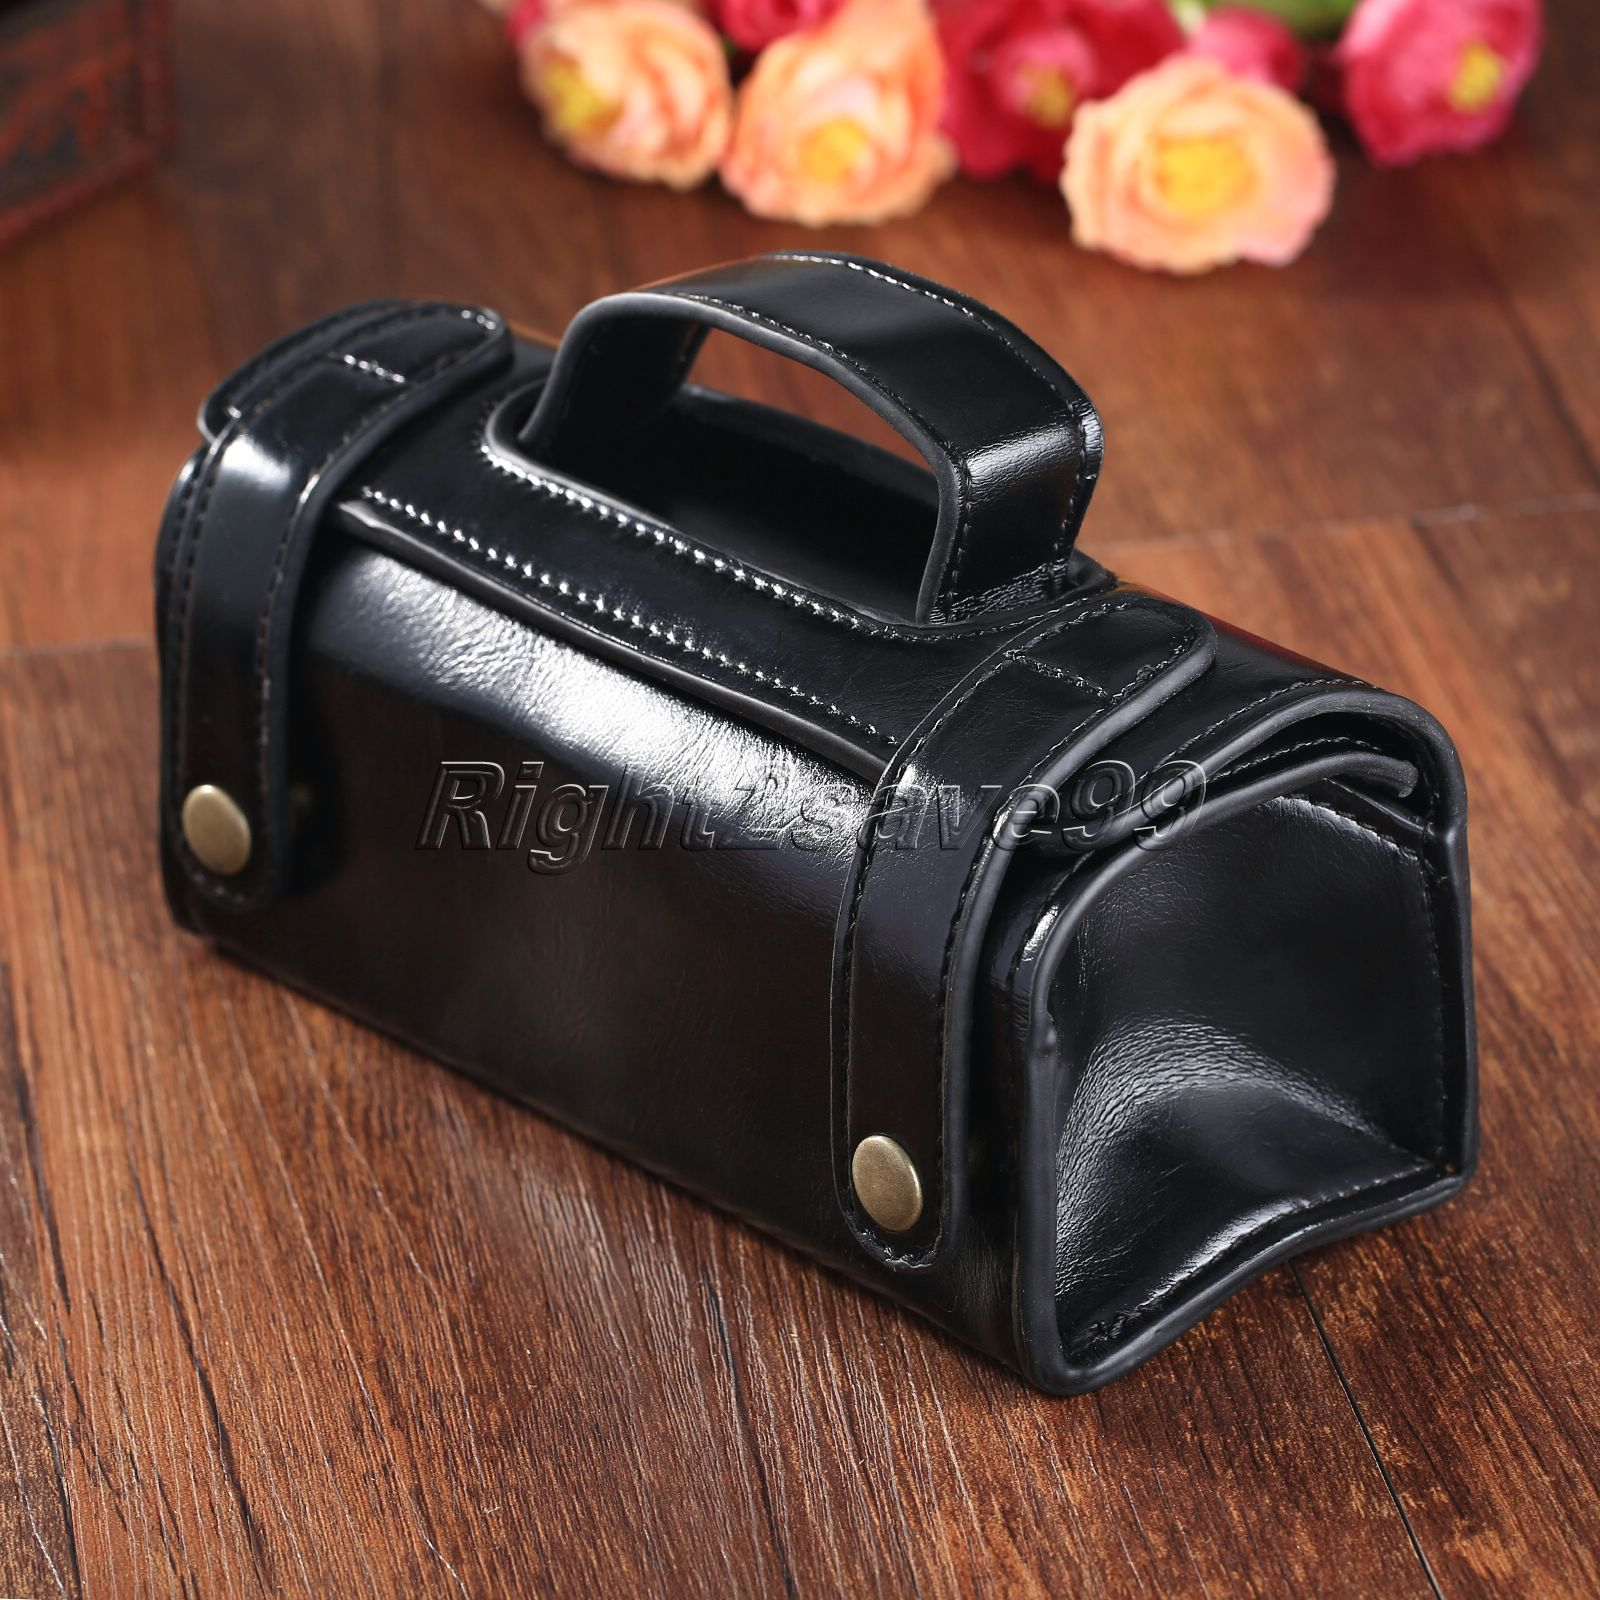 2017 Professional Barber Salon Shave Razor Brush Bamboo Handle Tool BagTravel Toiletry Bag Shaving Wash Case Organizer Bag Black